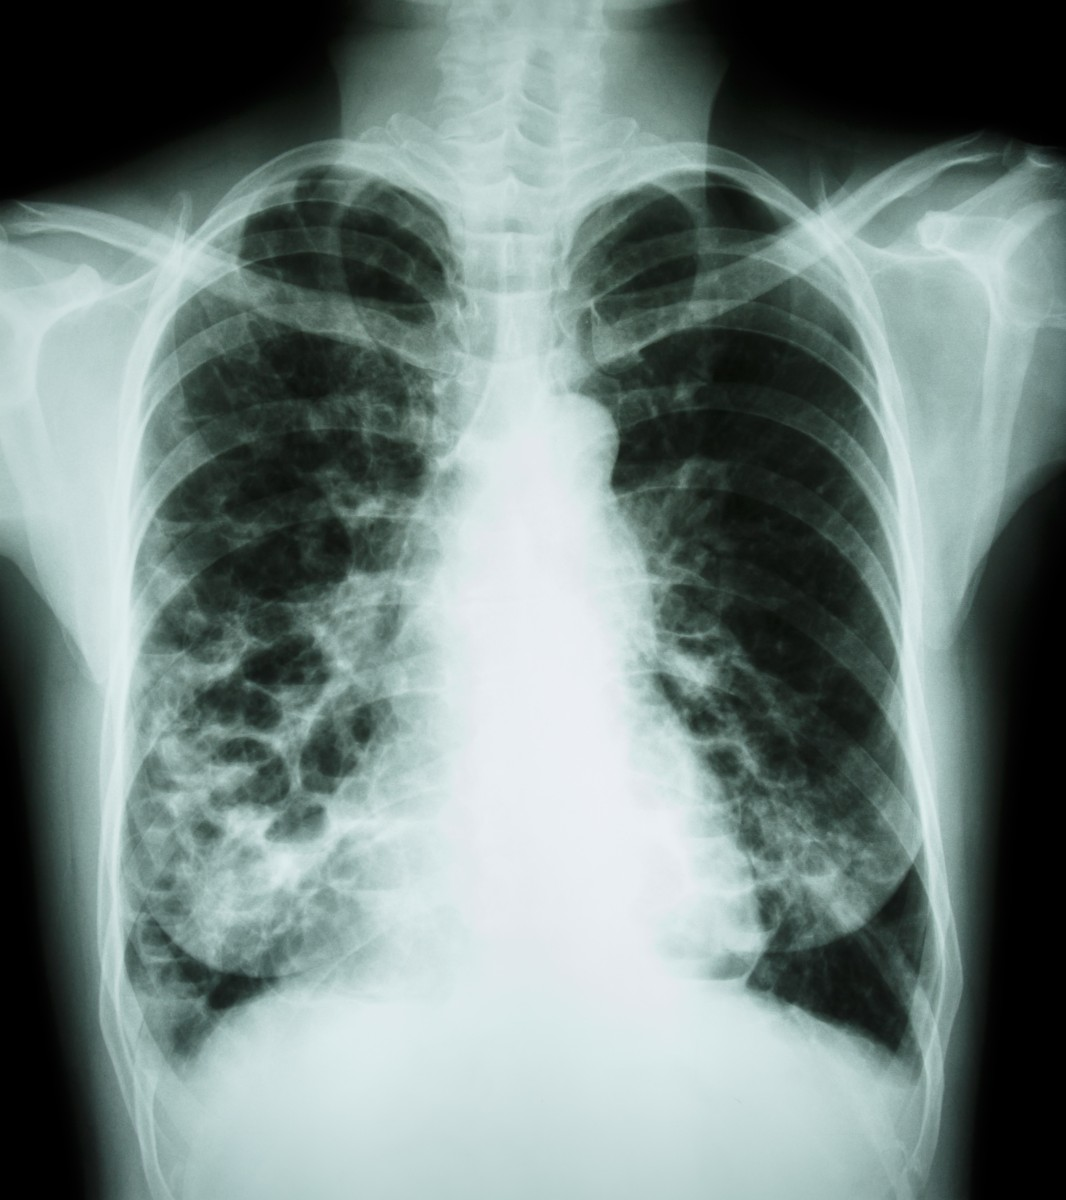 Viral Infections May Affect Cystic Fibrosis Patients: Insmed To Present Abstracts On NTM Lung Infection Therapy